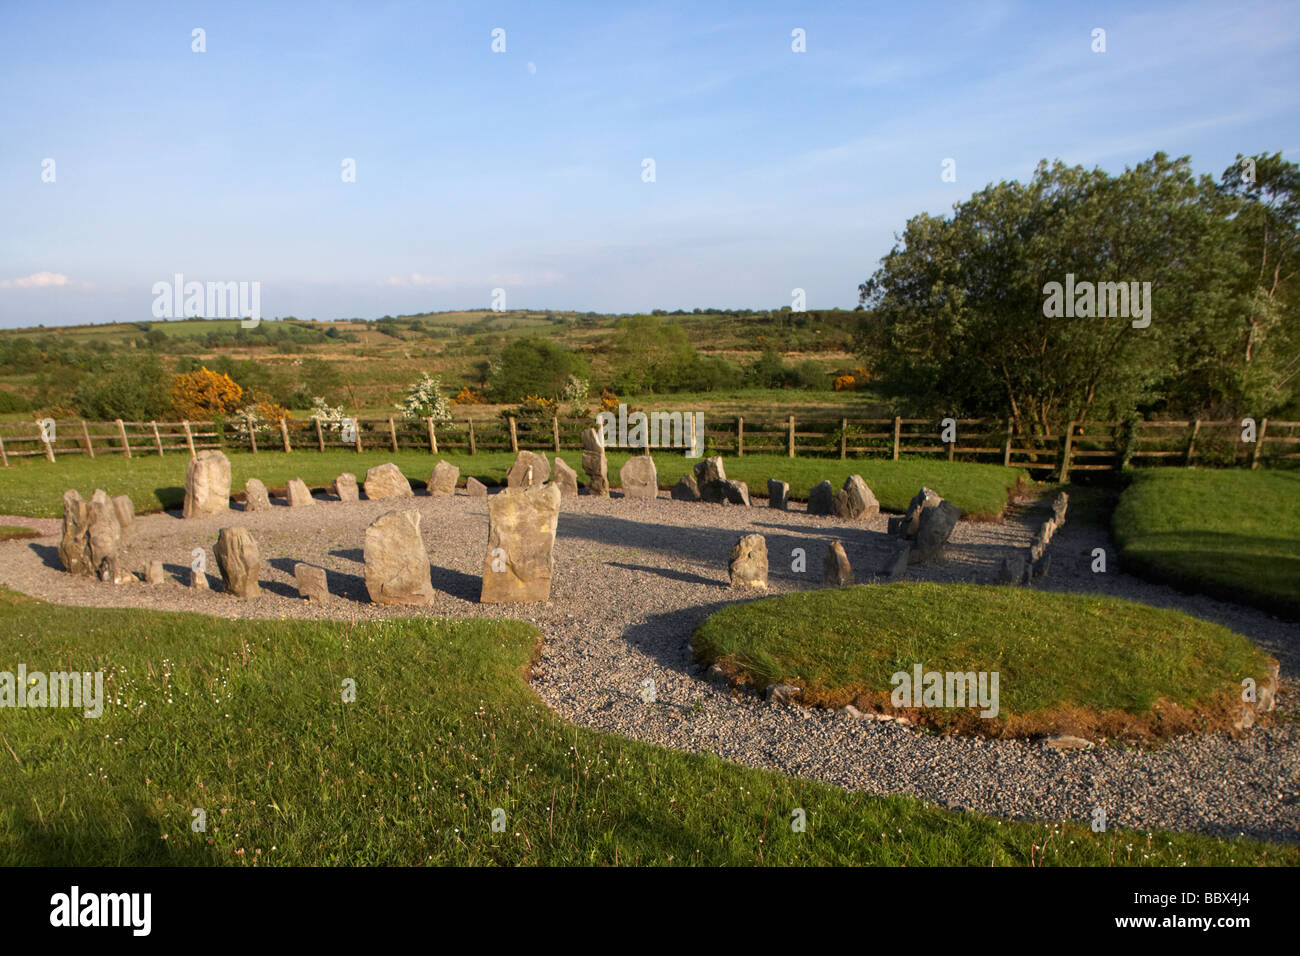 drumskinney stone circle cairn and alignment stone row county fermanagh northern ireland uk - Stock Image